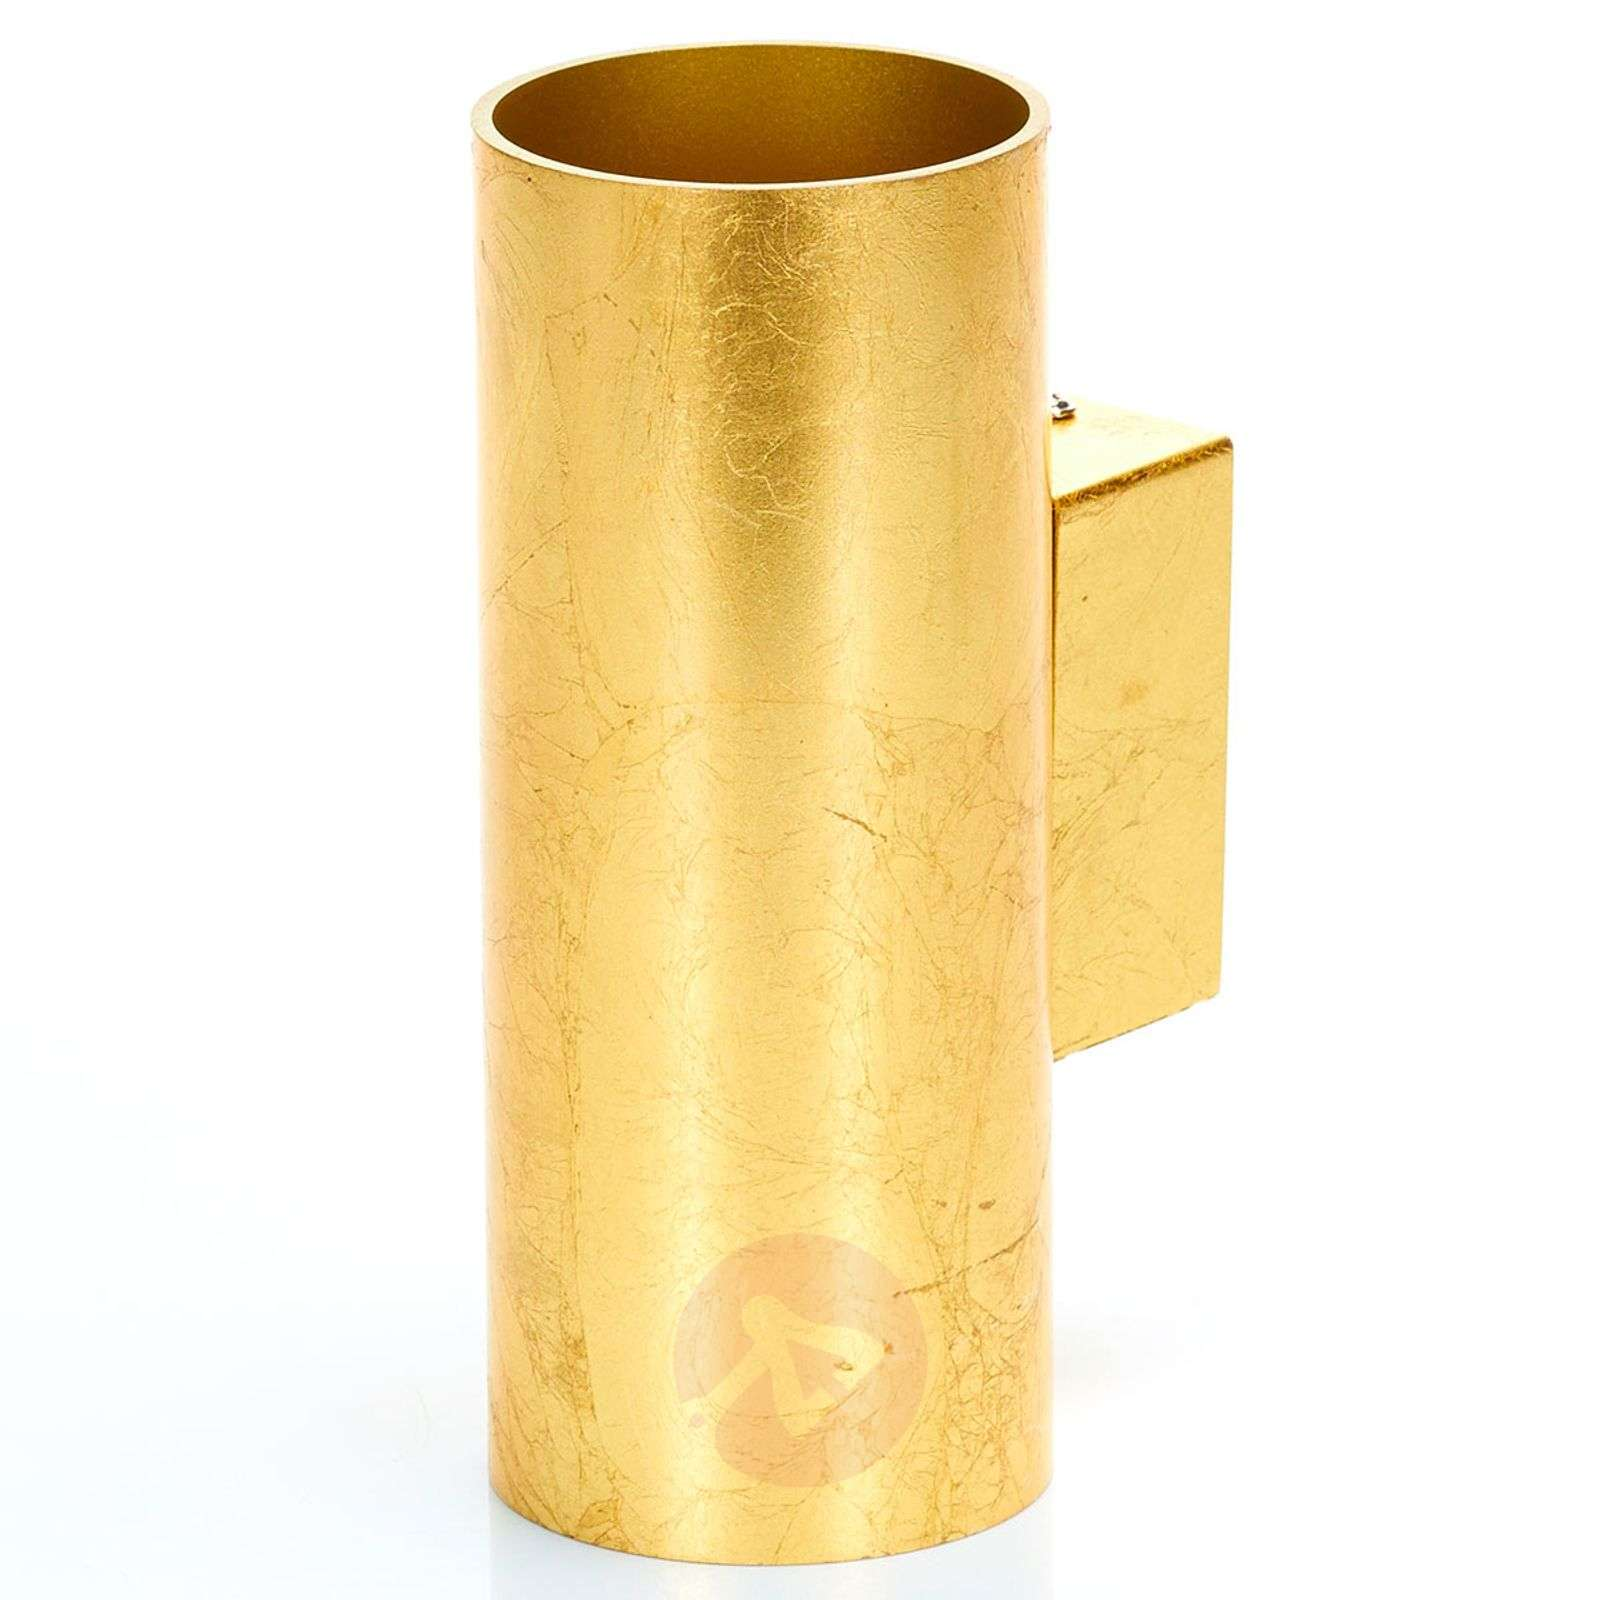 Meral golden LED wall lamp, cylindrical-9994130-03